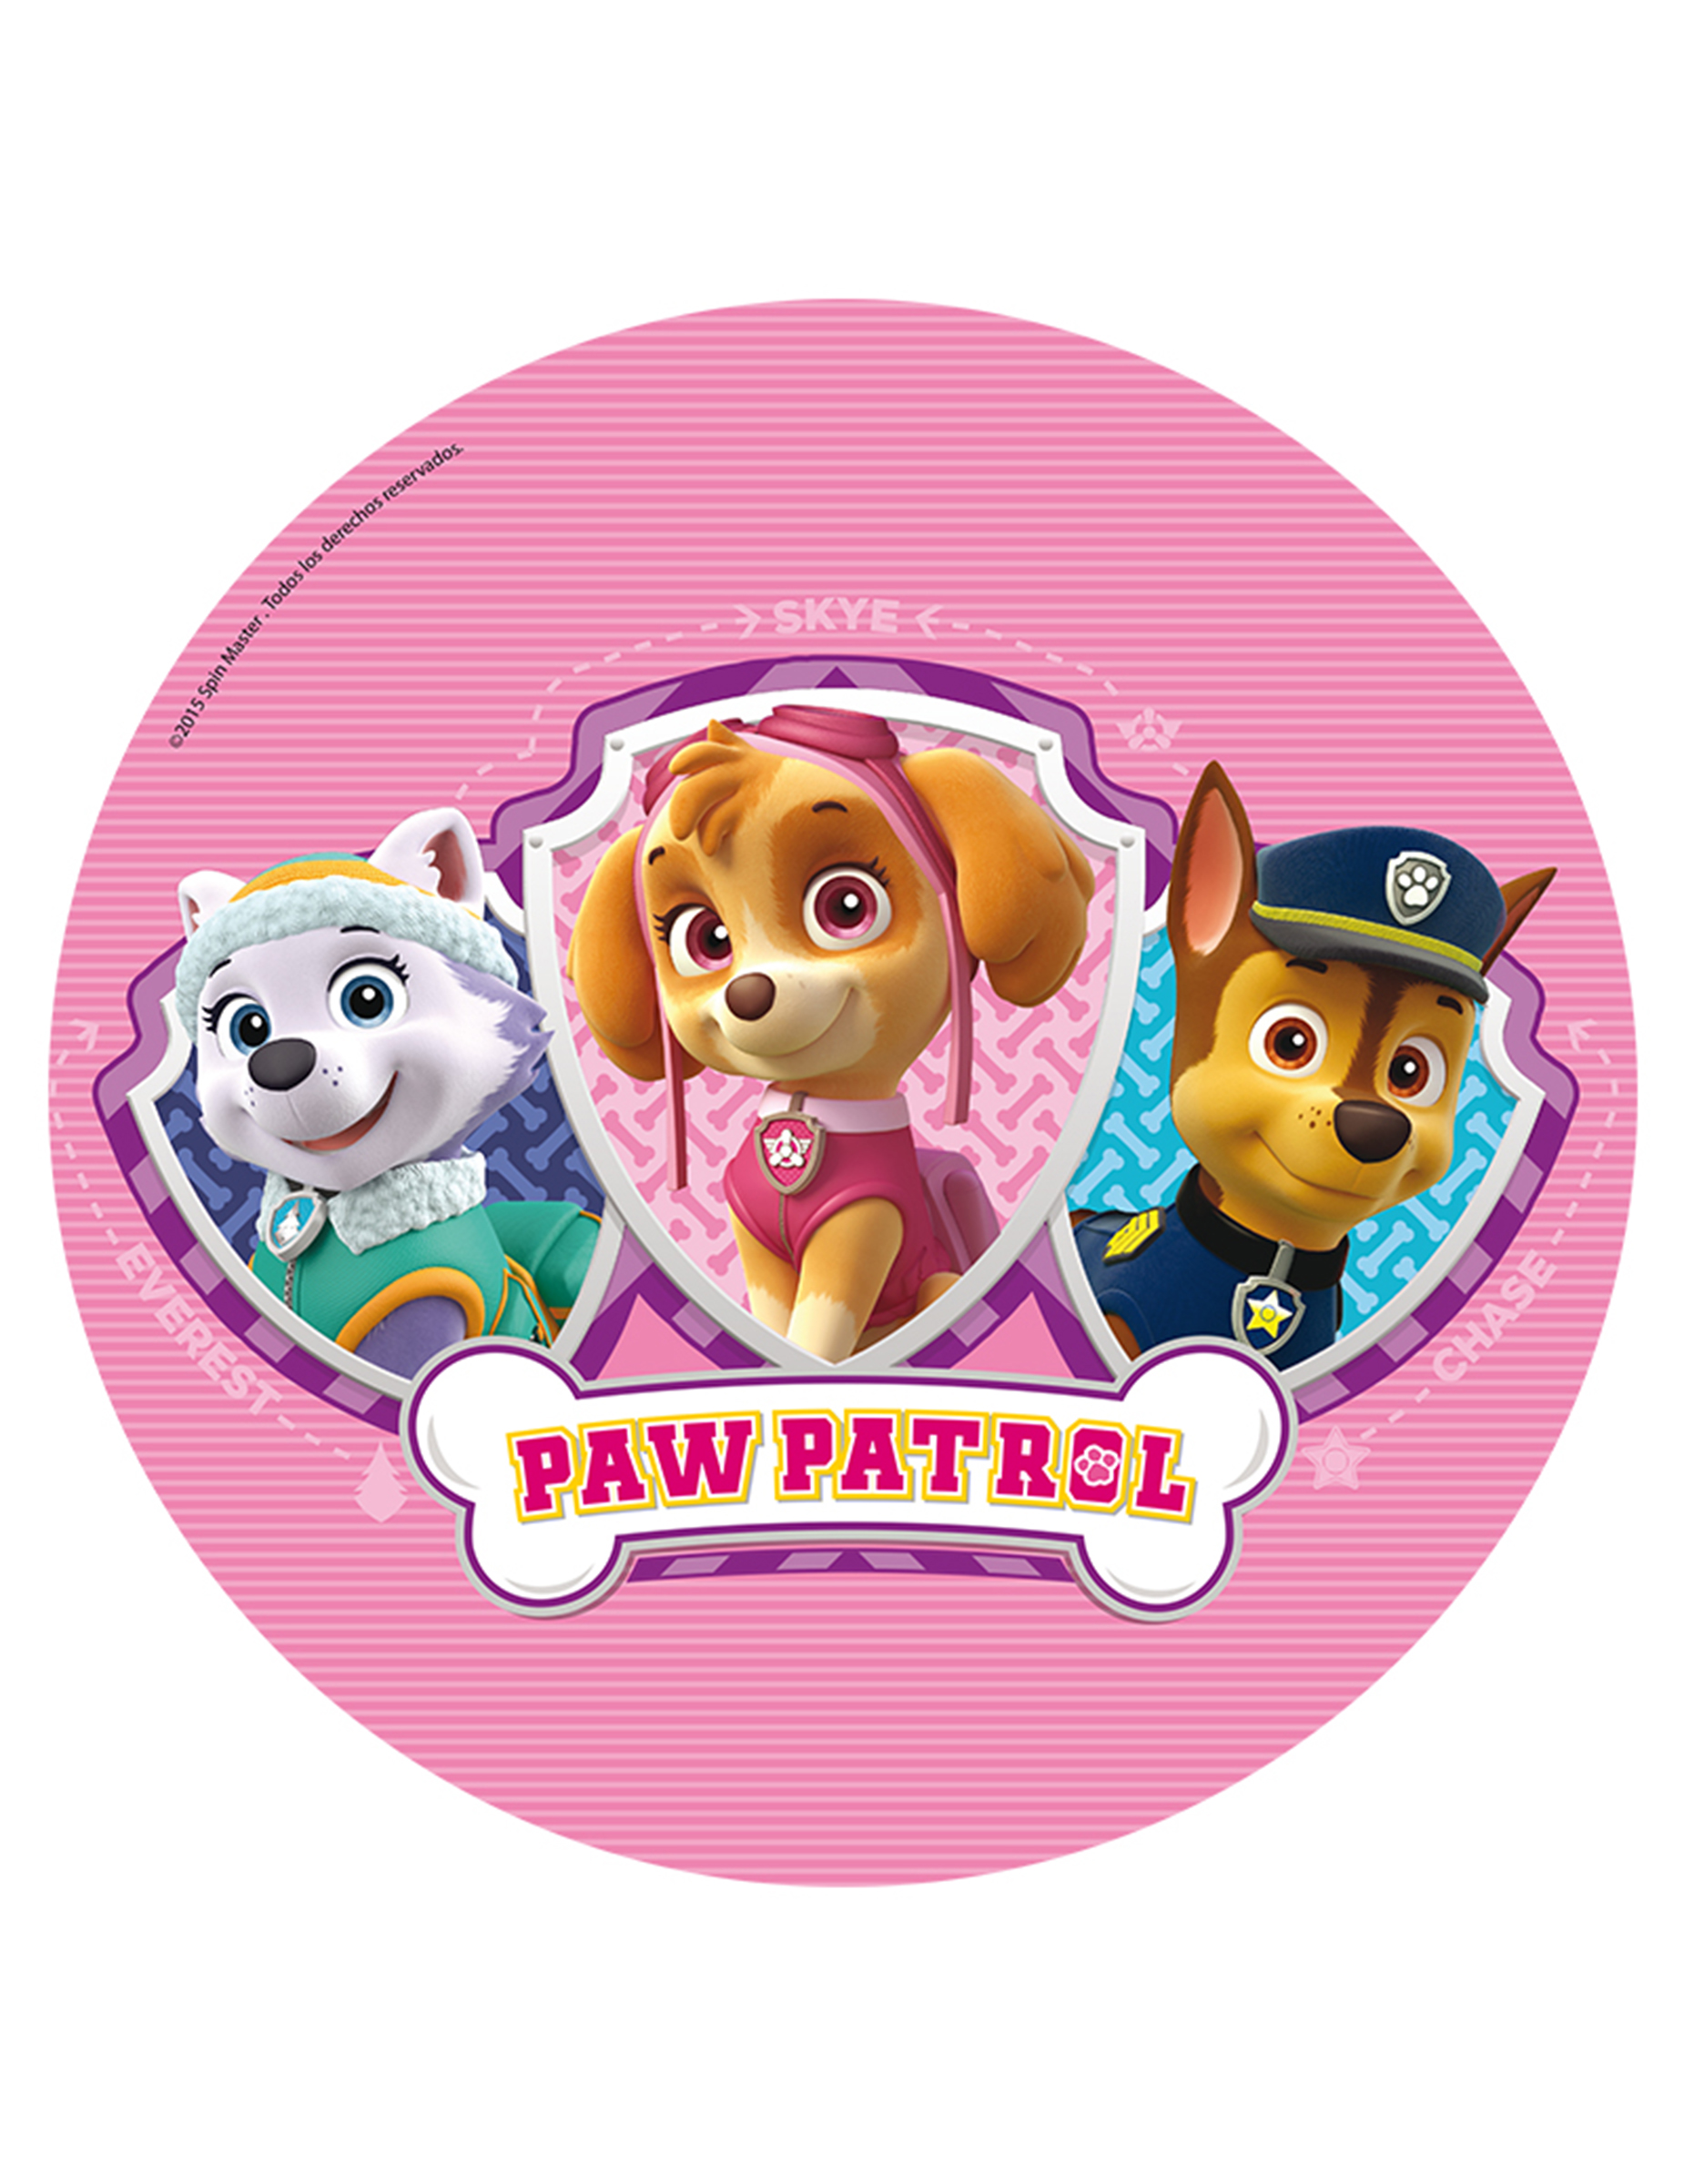 disques azyme 20 cm pat 39 patrouille paw patrol d coration anniversaire et f tes th me sur. Black Bedroom Furniture Sets. Home Design Ideas